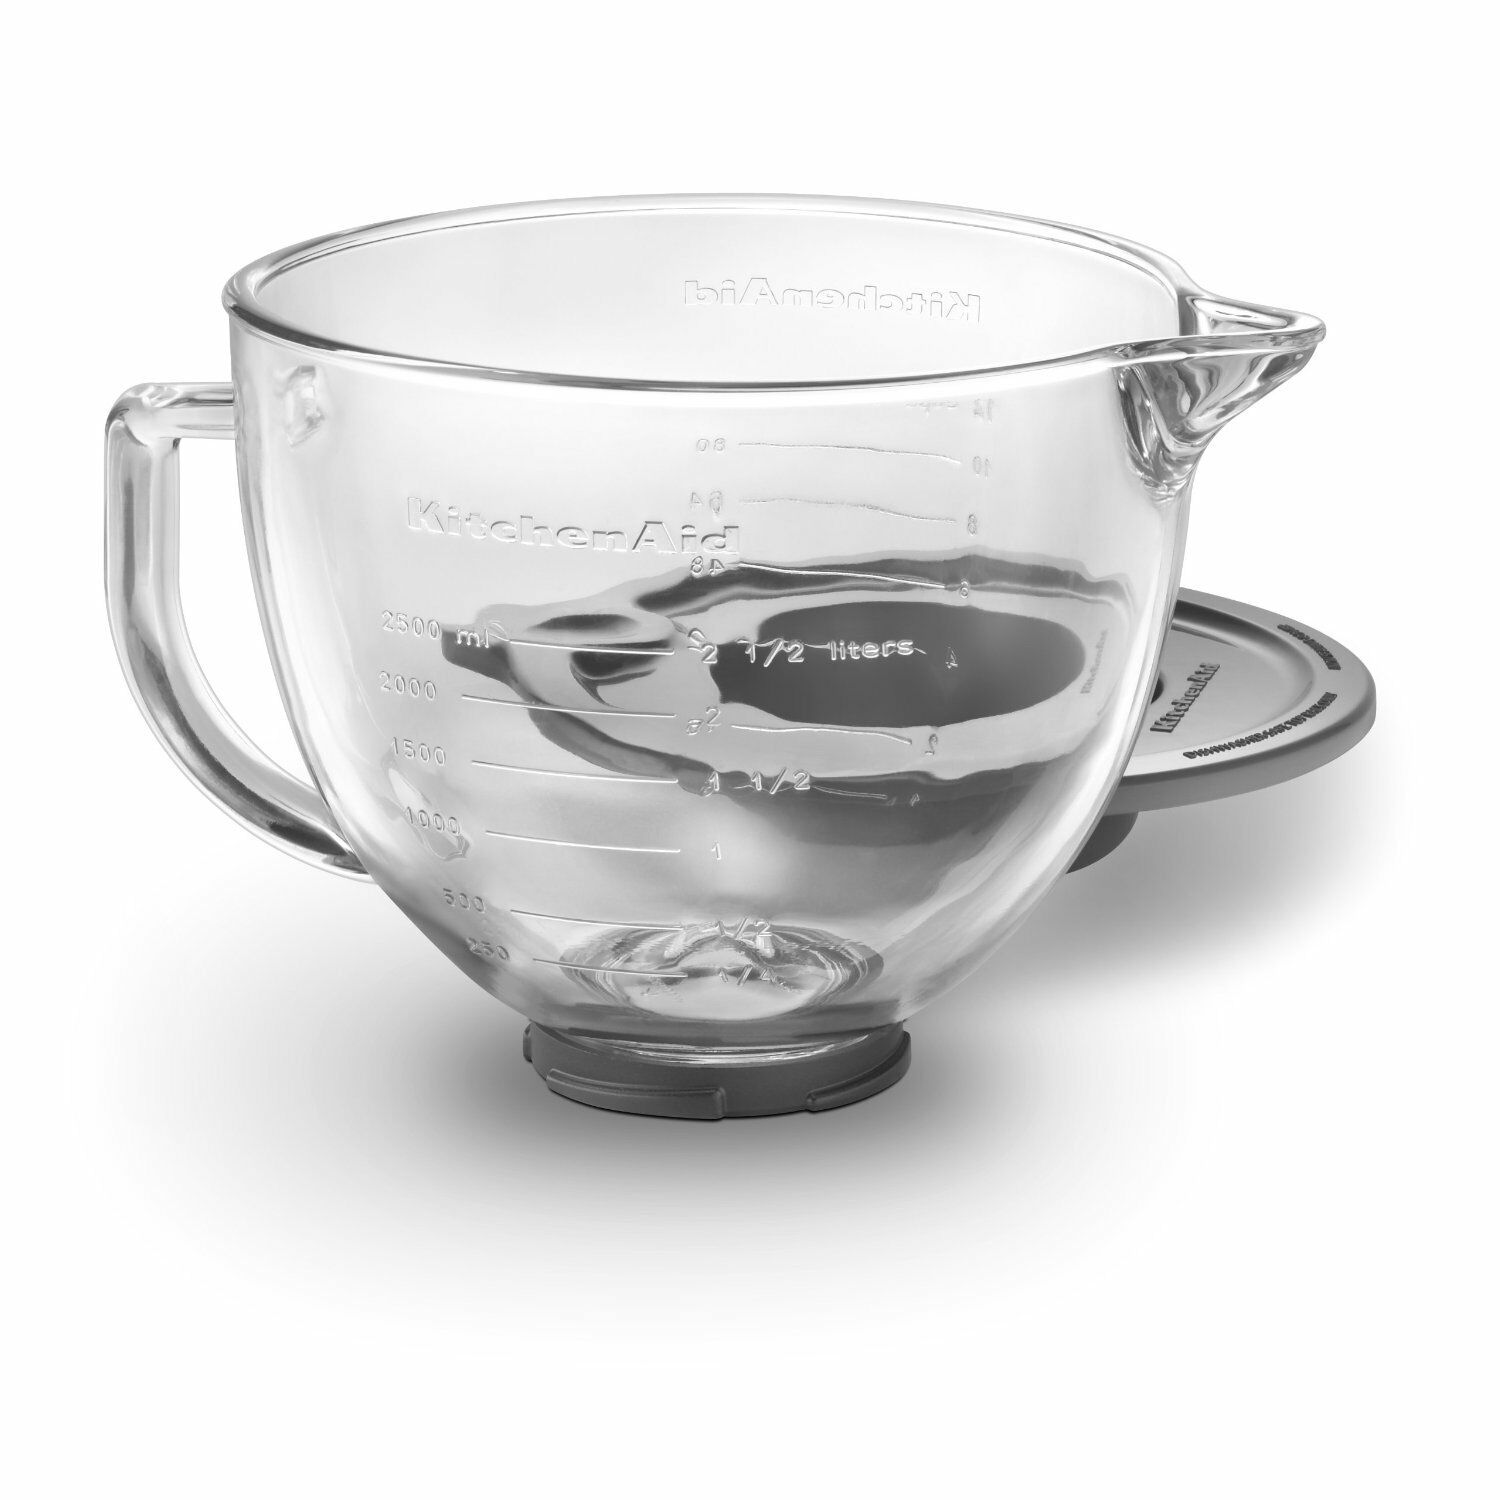 New KitchenAid 5-Quart Glass Bowl With Lid K5GB Fits Tilt Artisan Models